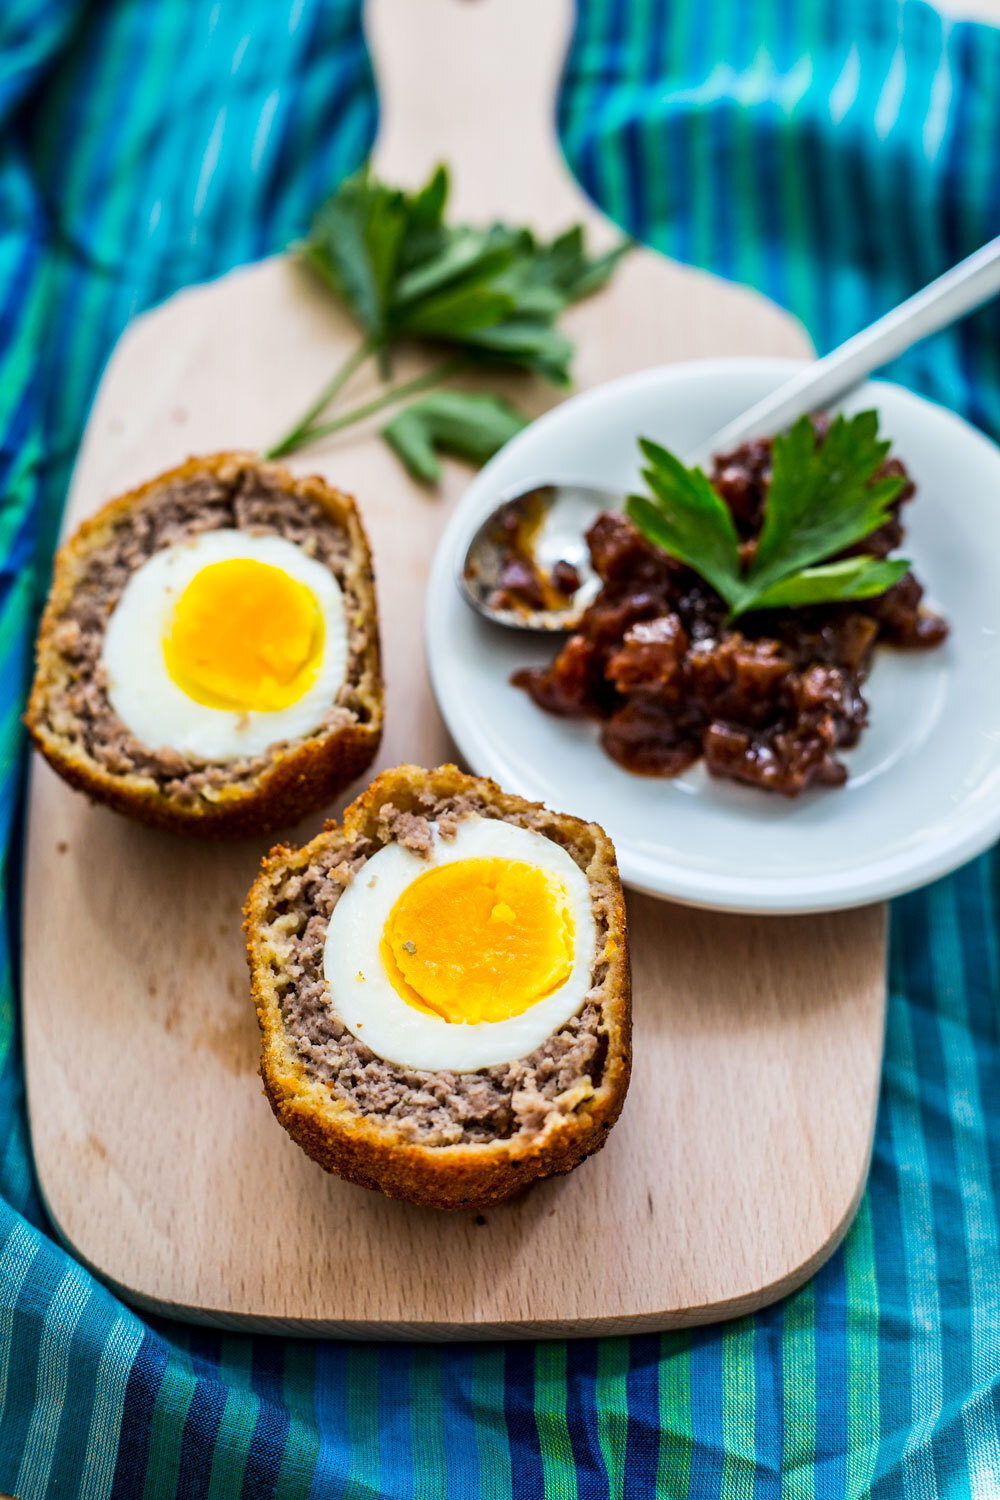 A Scotch Egg Recipe for My Dad